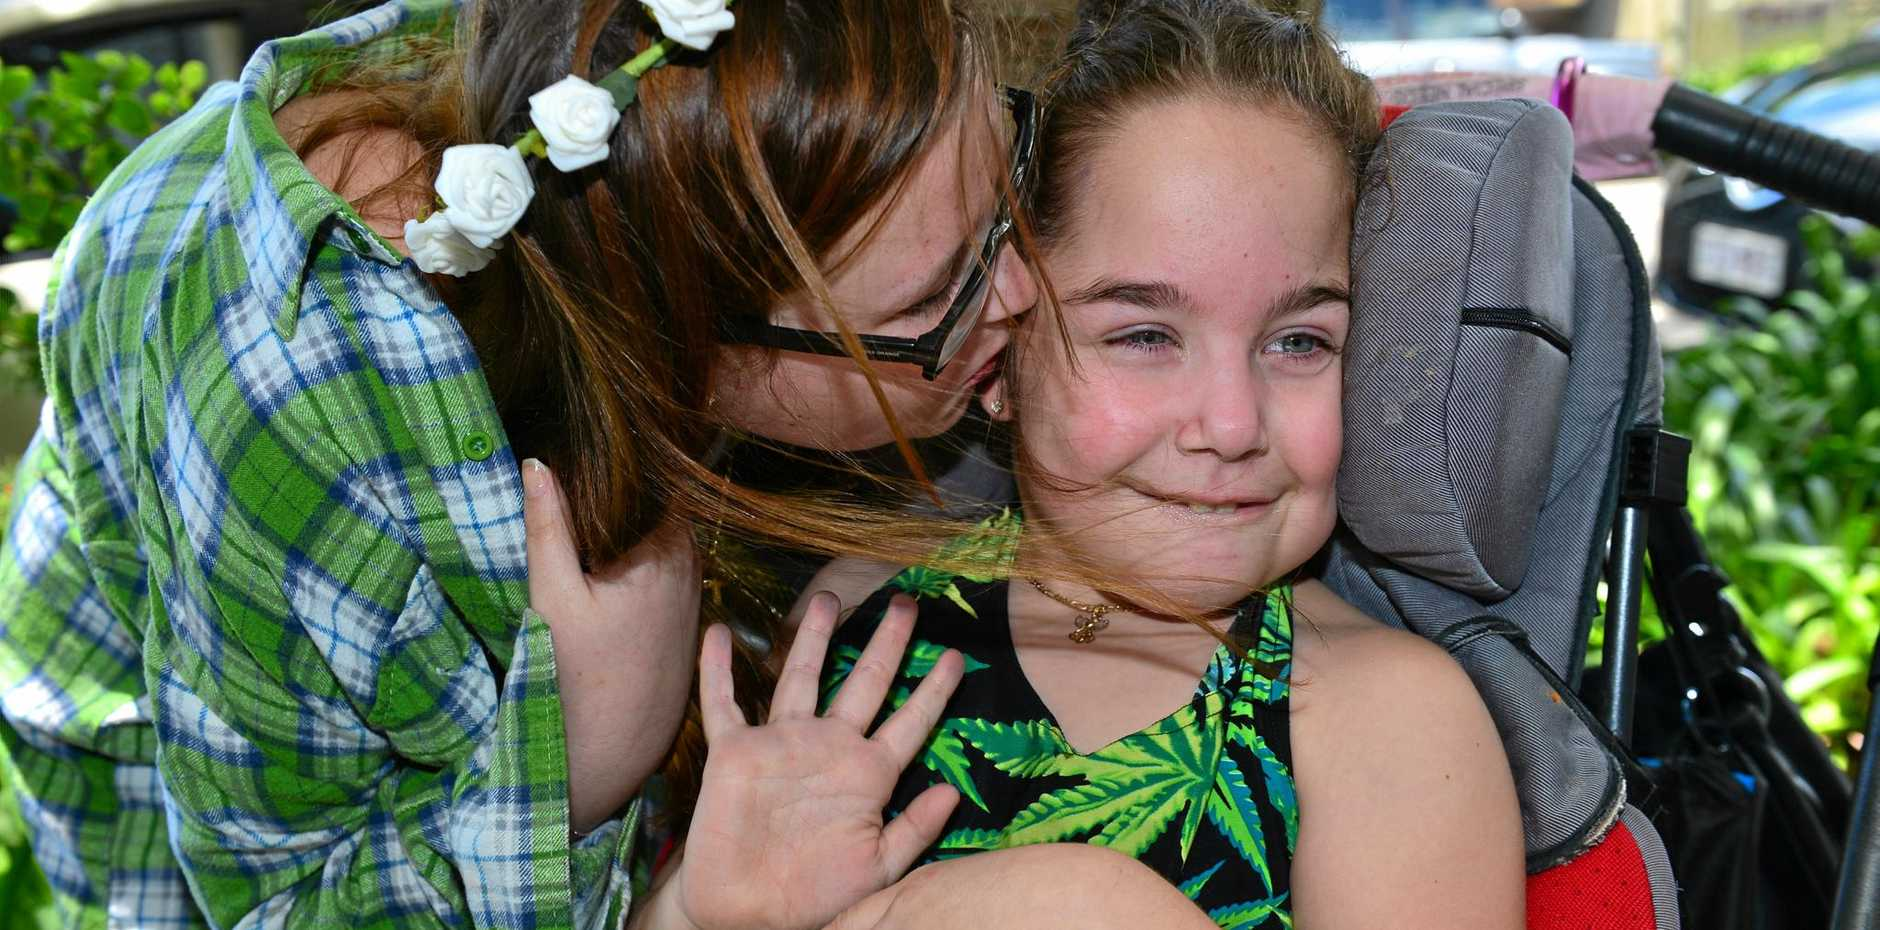 HAPPY AND HEALTHY: When medicated with marijuana oil, Kaitlyn is a playful child.